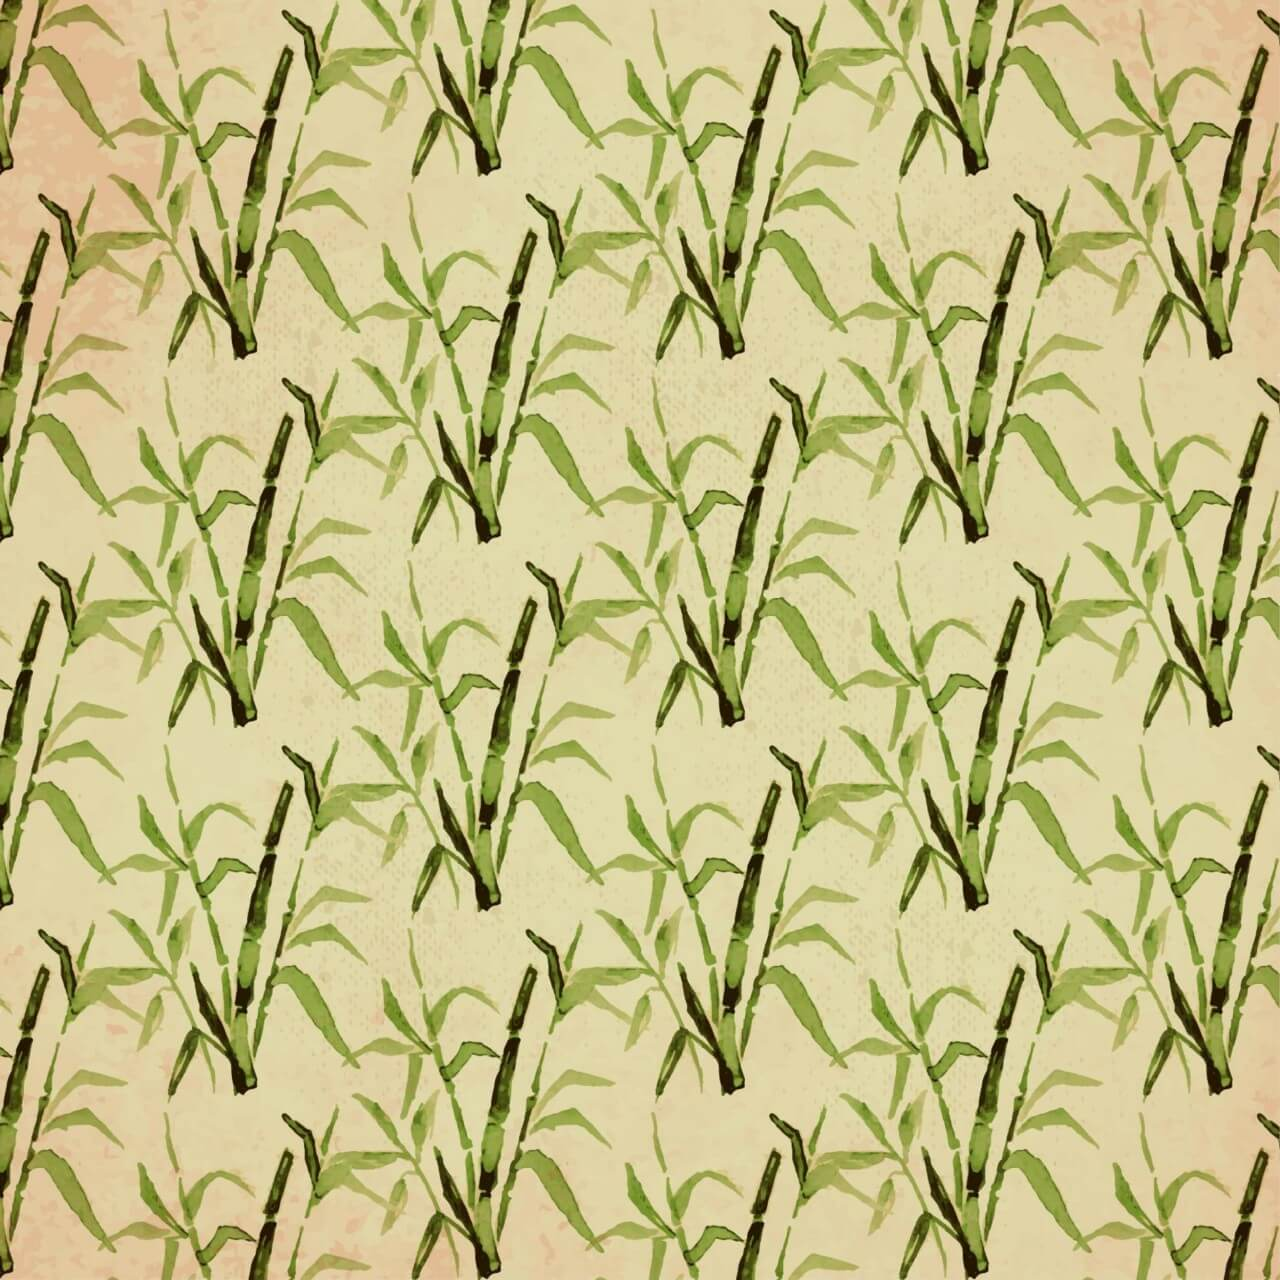 """Free vector """"Vintage japanese pattern with bamboo"""""""